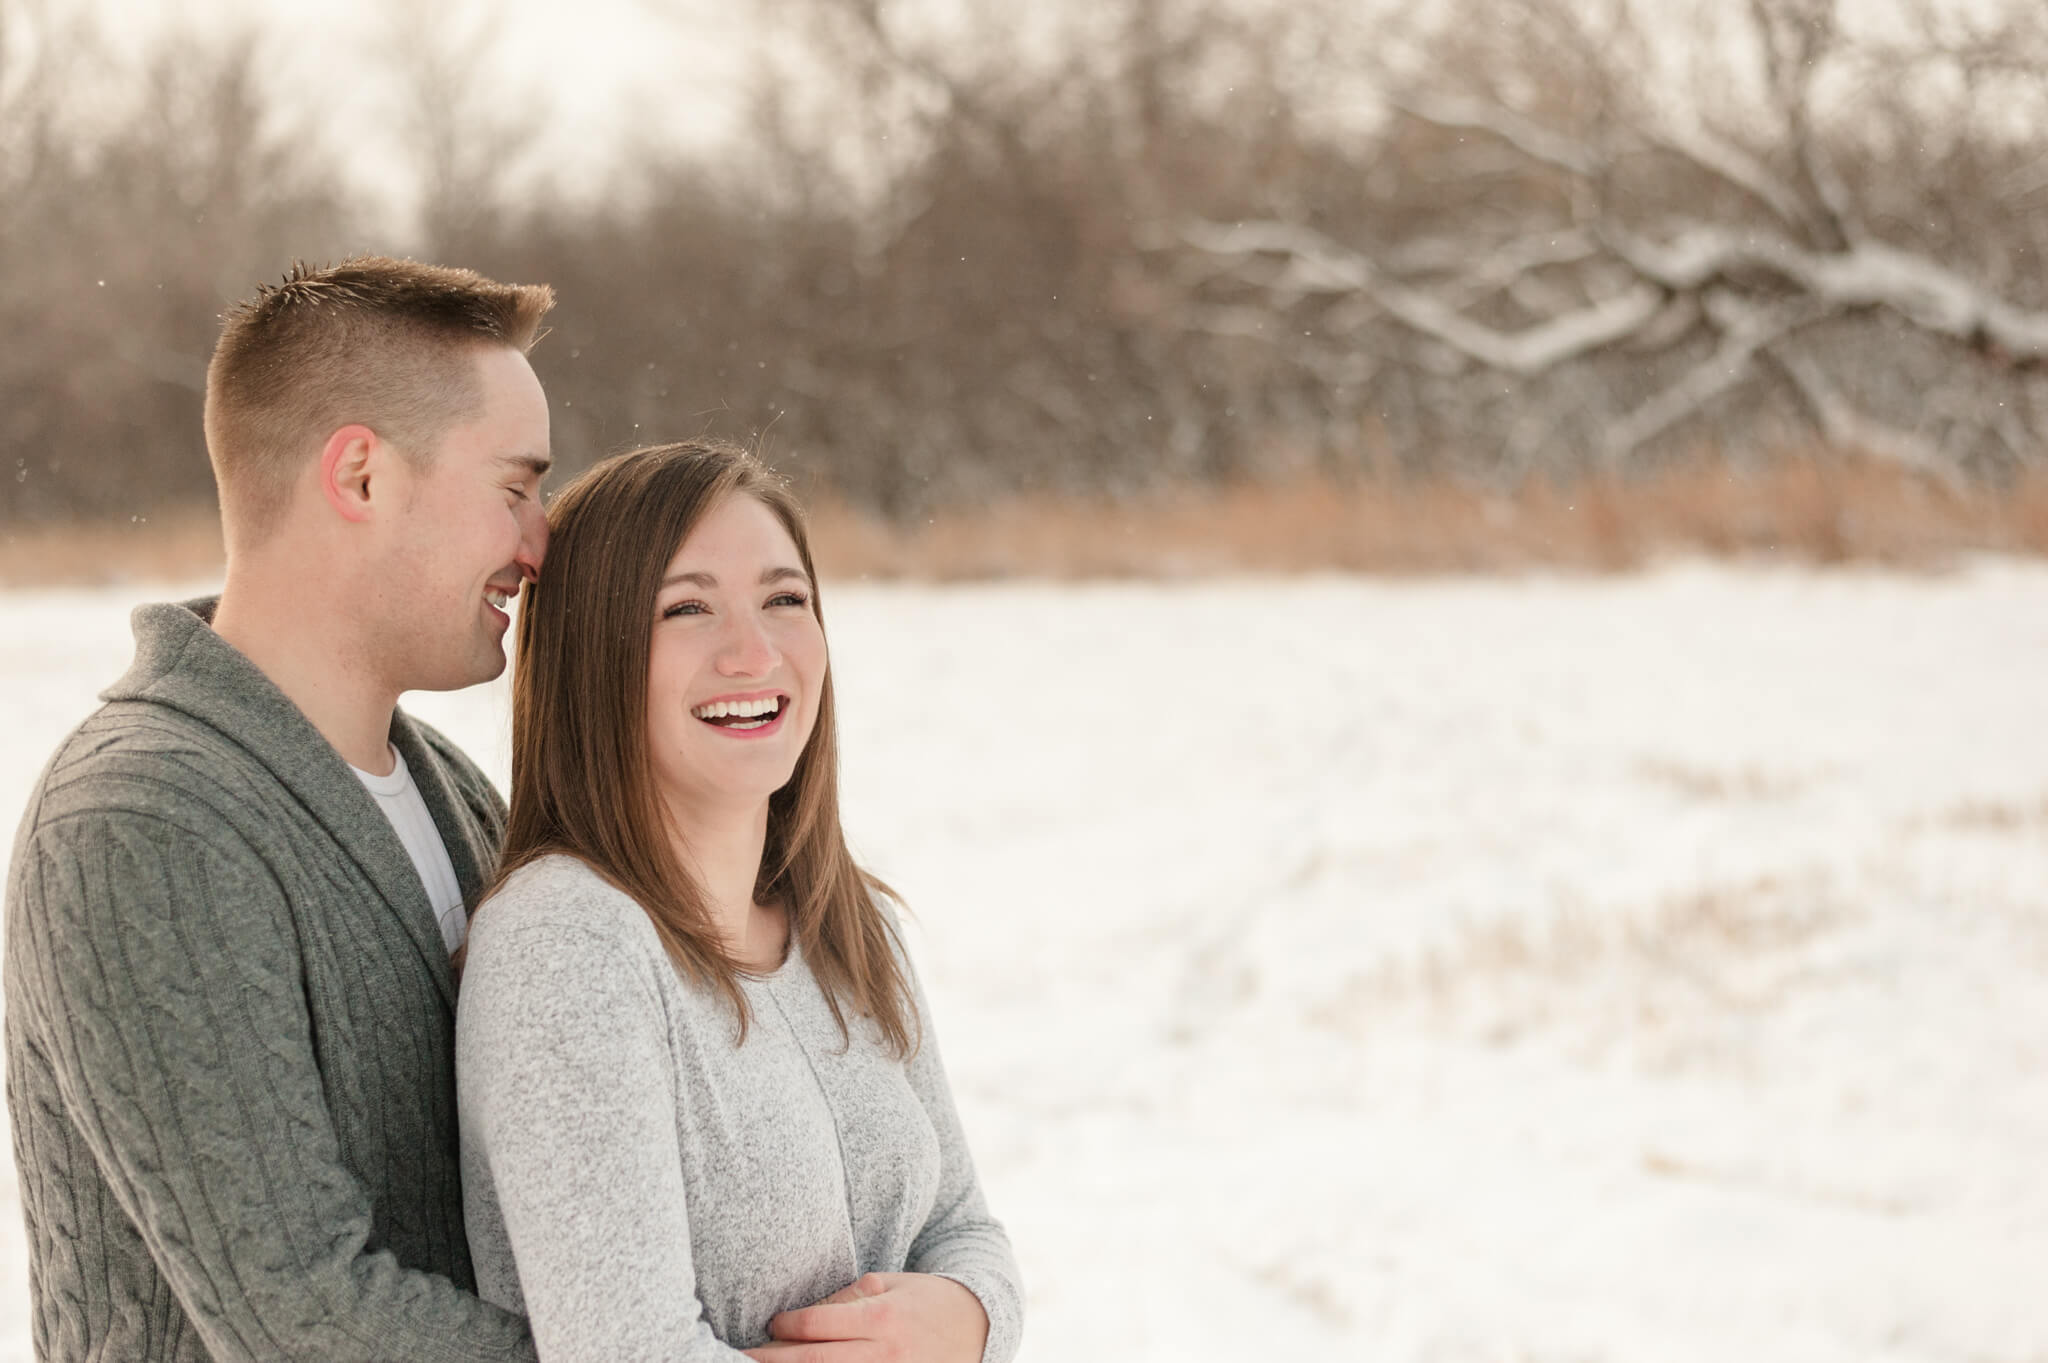 Man in grey sweater holds his fiancee in her white sweater